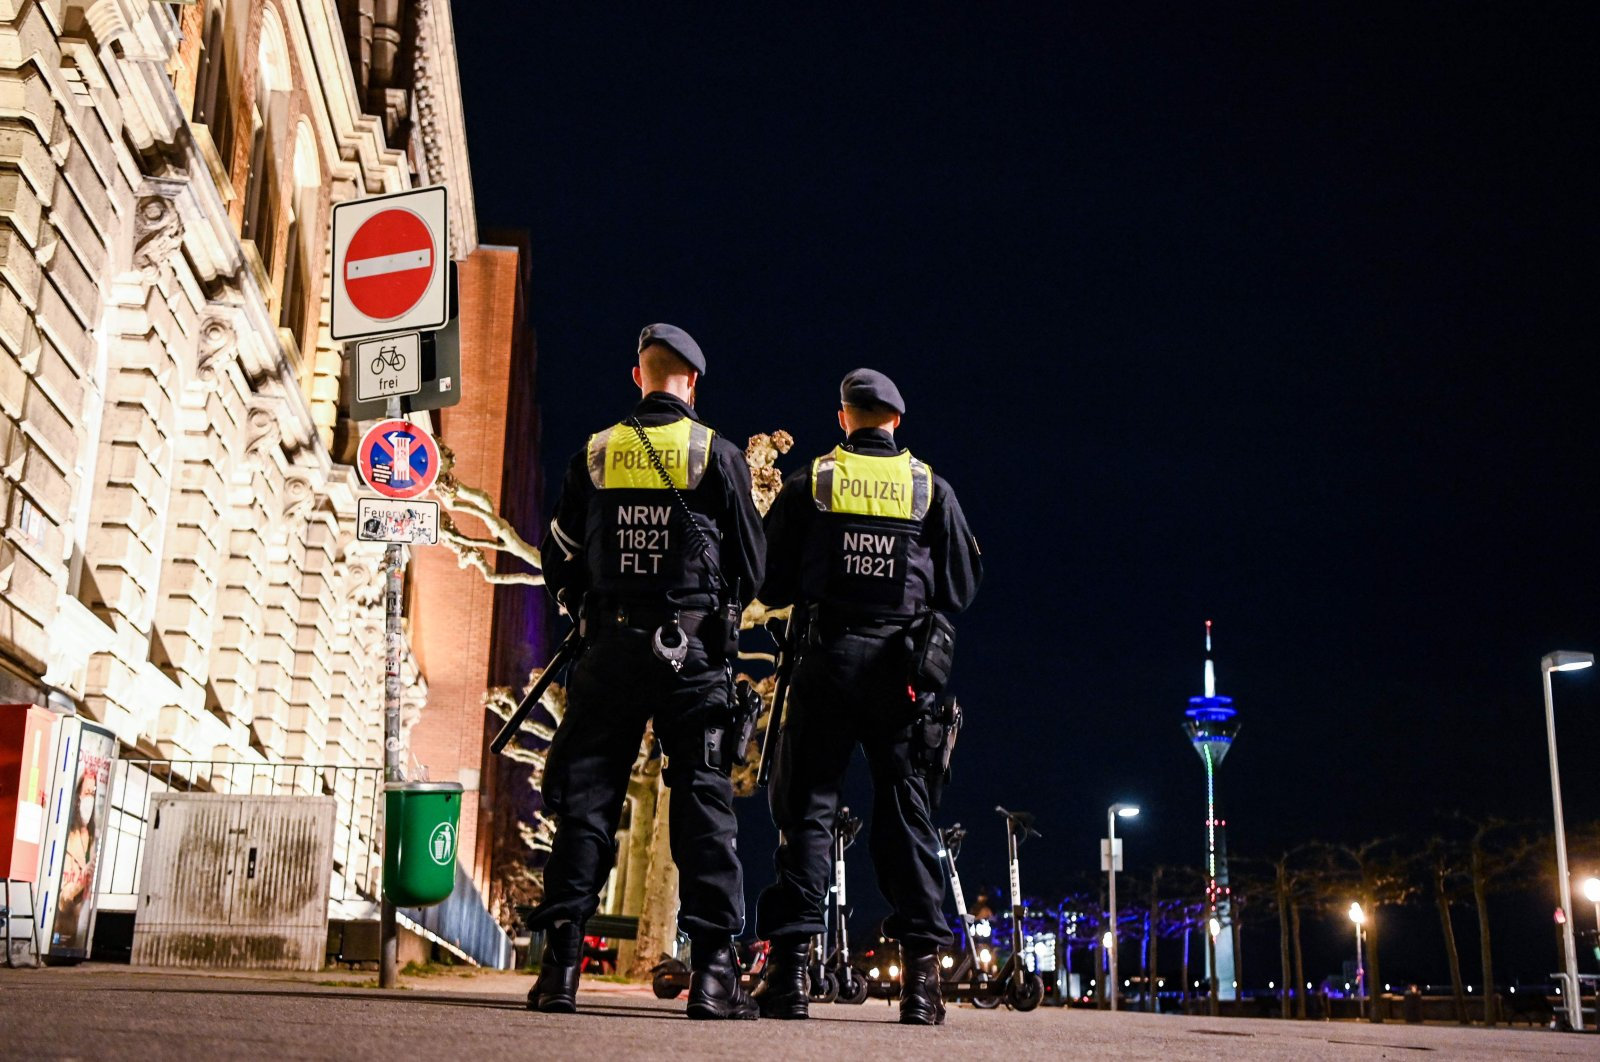 Police officers patrol at the Rhine promenade during exit restrictions in Duesseldorf, western Germany, on April 24, 2021, amid the novel coronavirus / COVID-19 pandemic. (AFP File Photo)